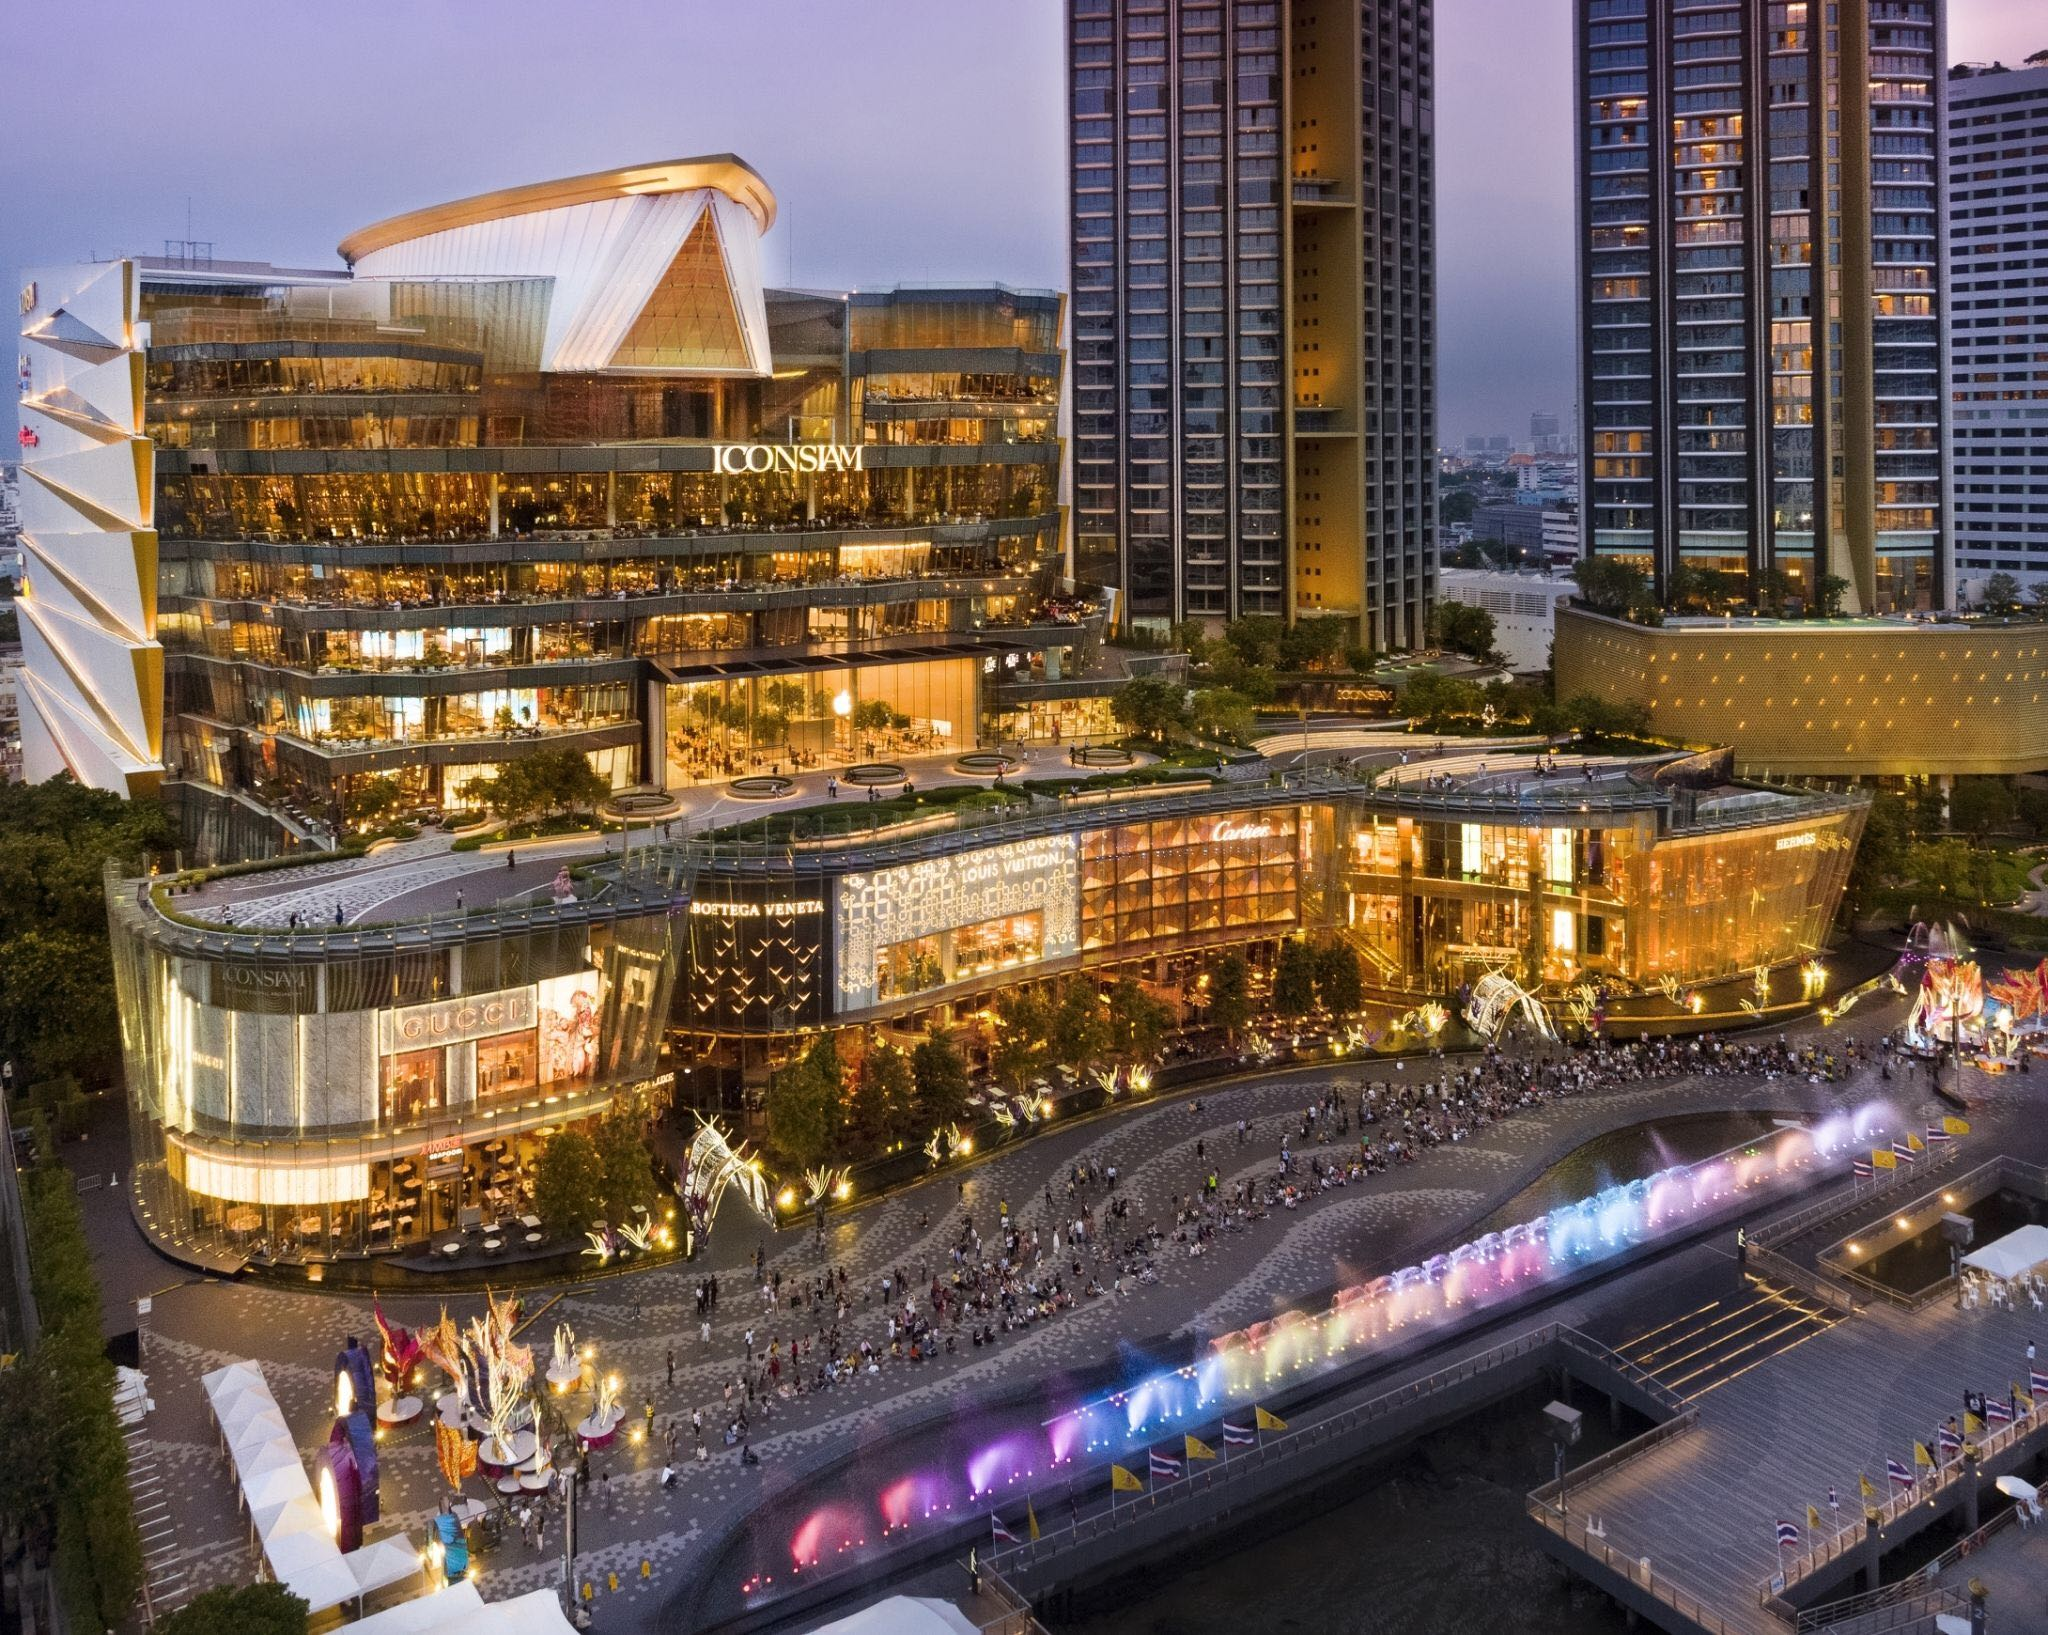 ICONSIAM celebrates its anniversary with the grand opening of TRUE ICON HALL